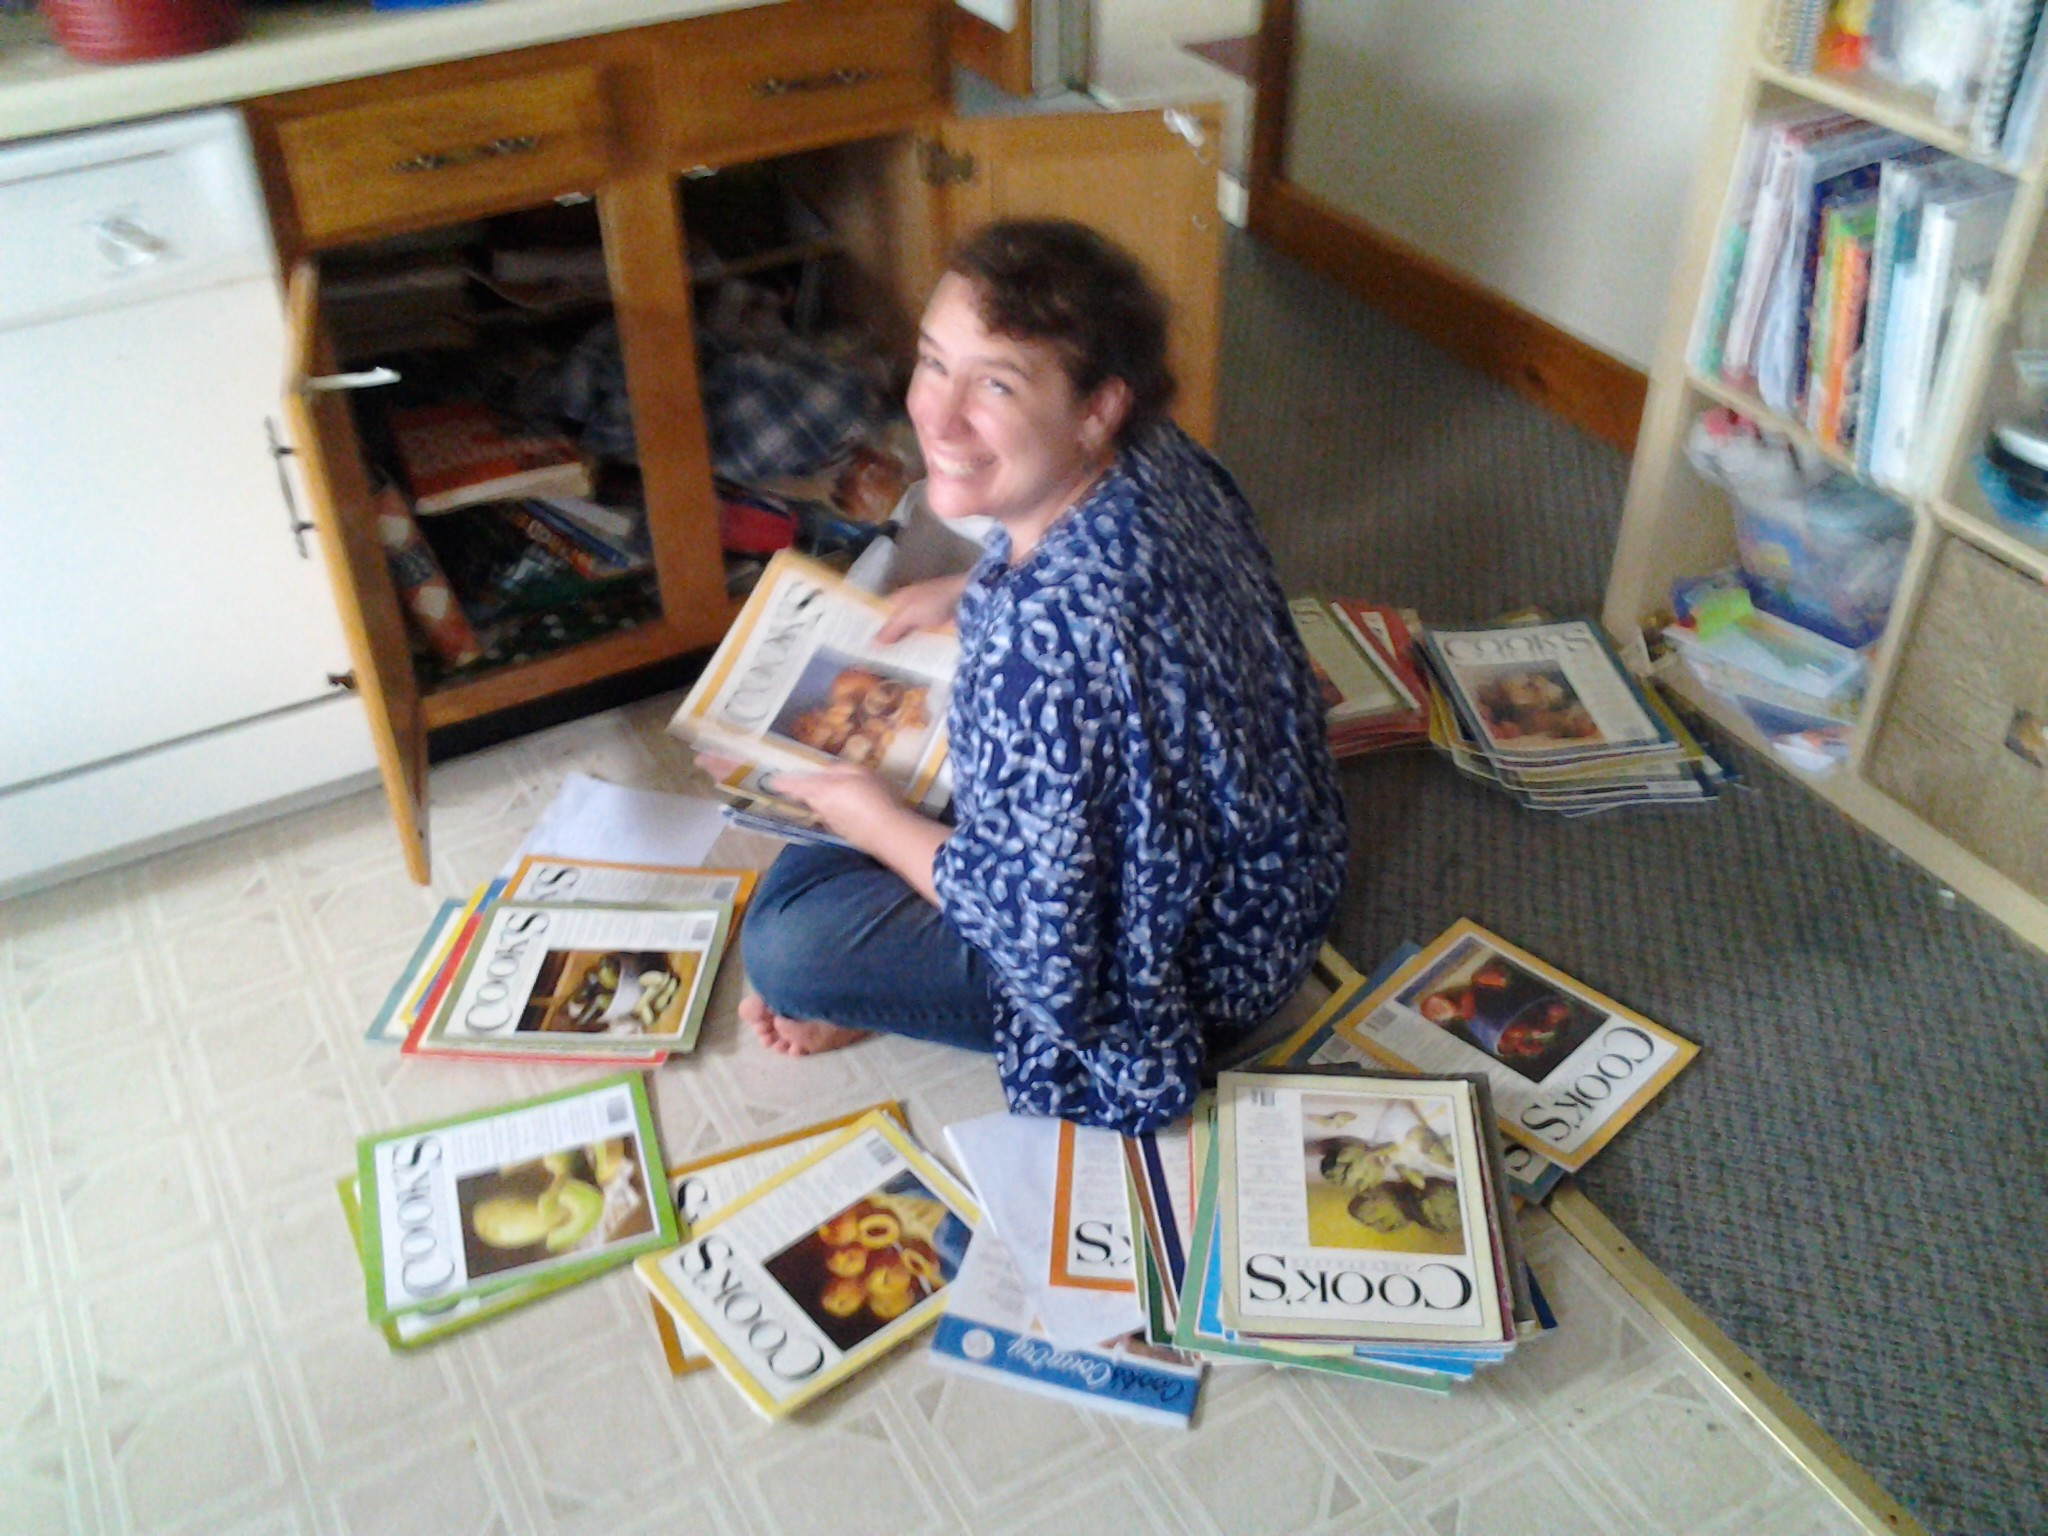 Christine sorting cooks illustrated magazines